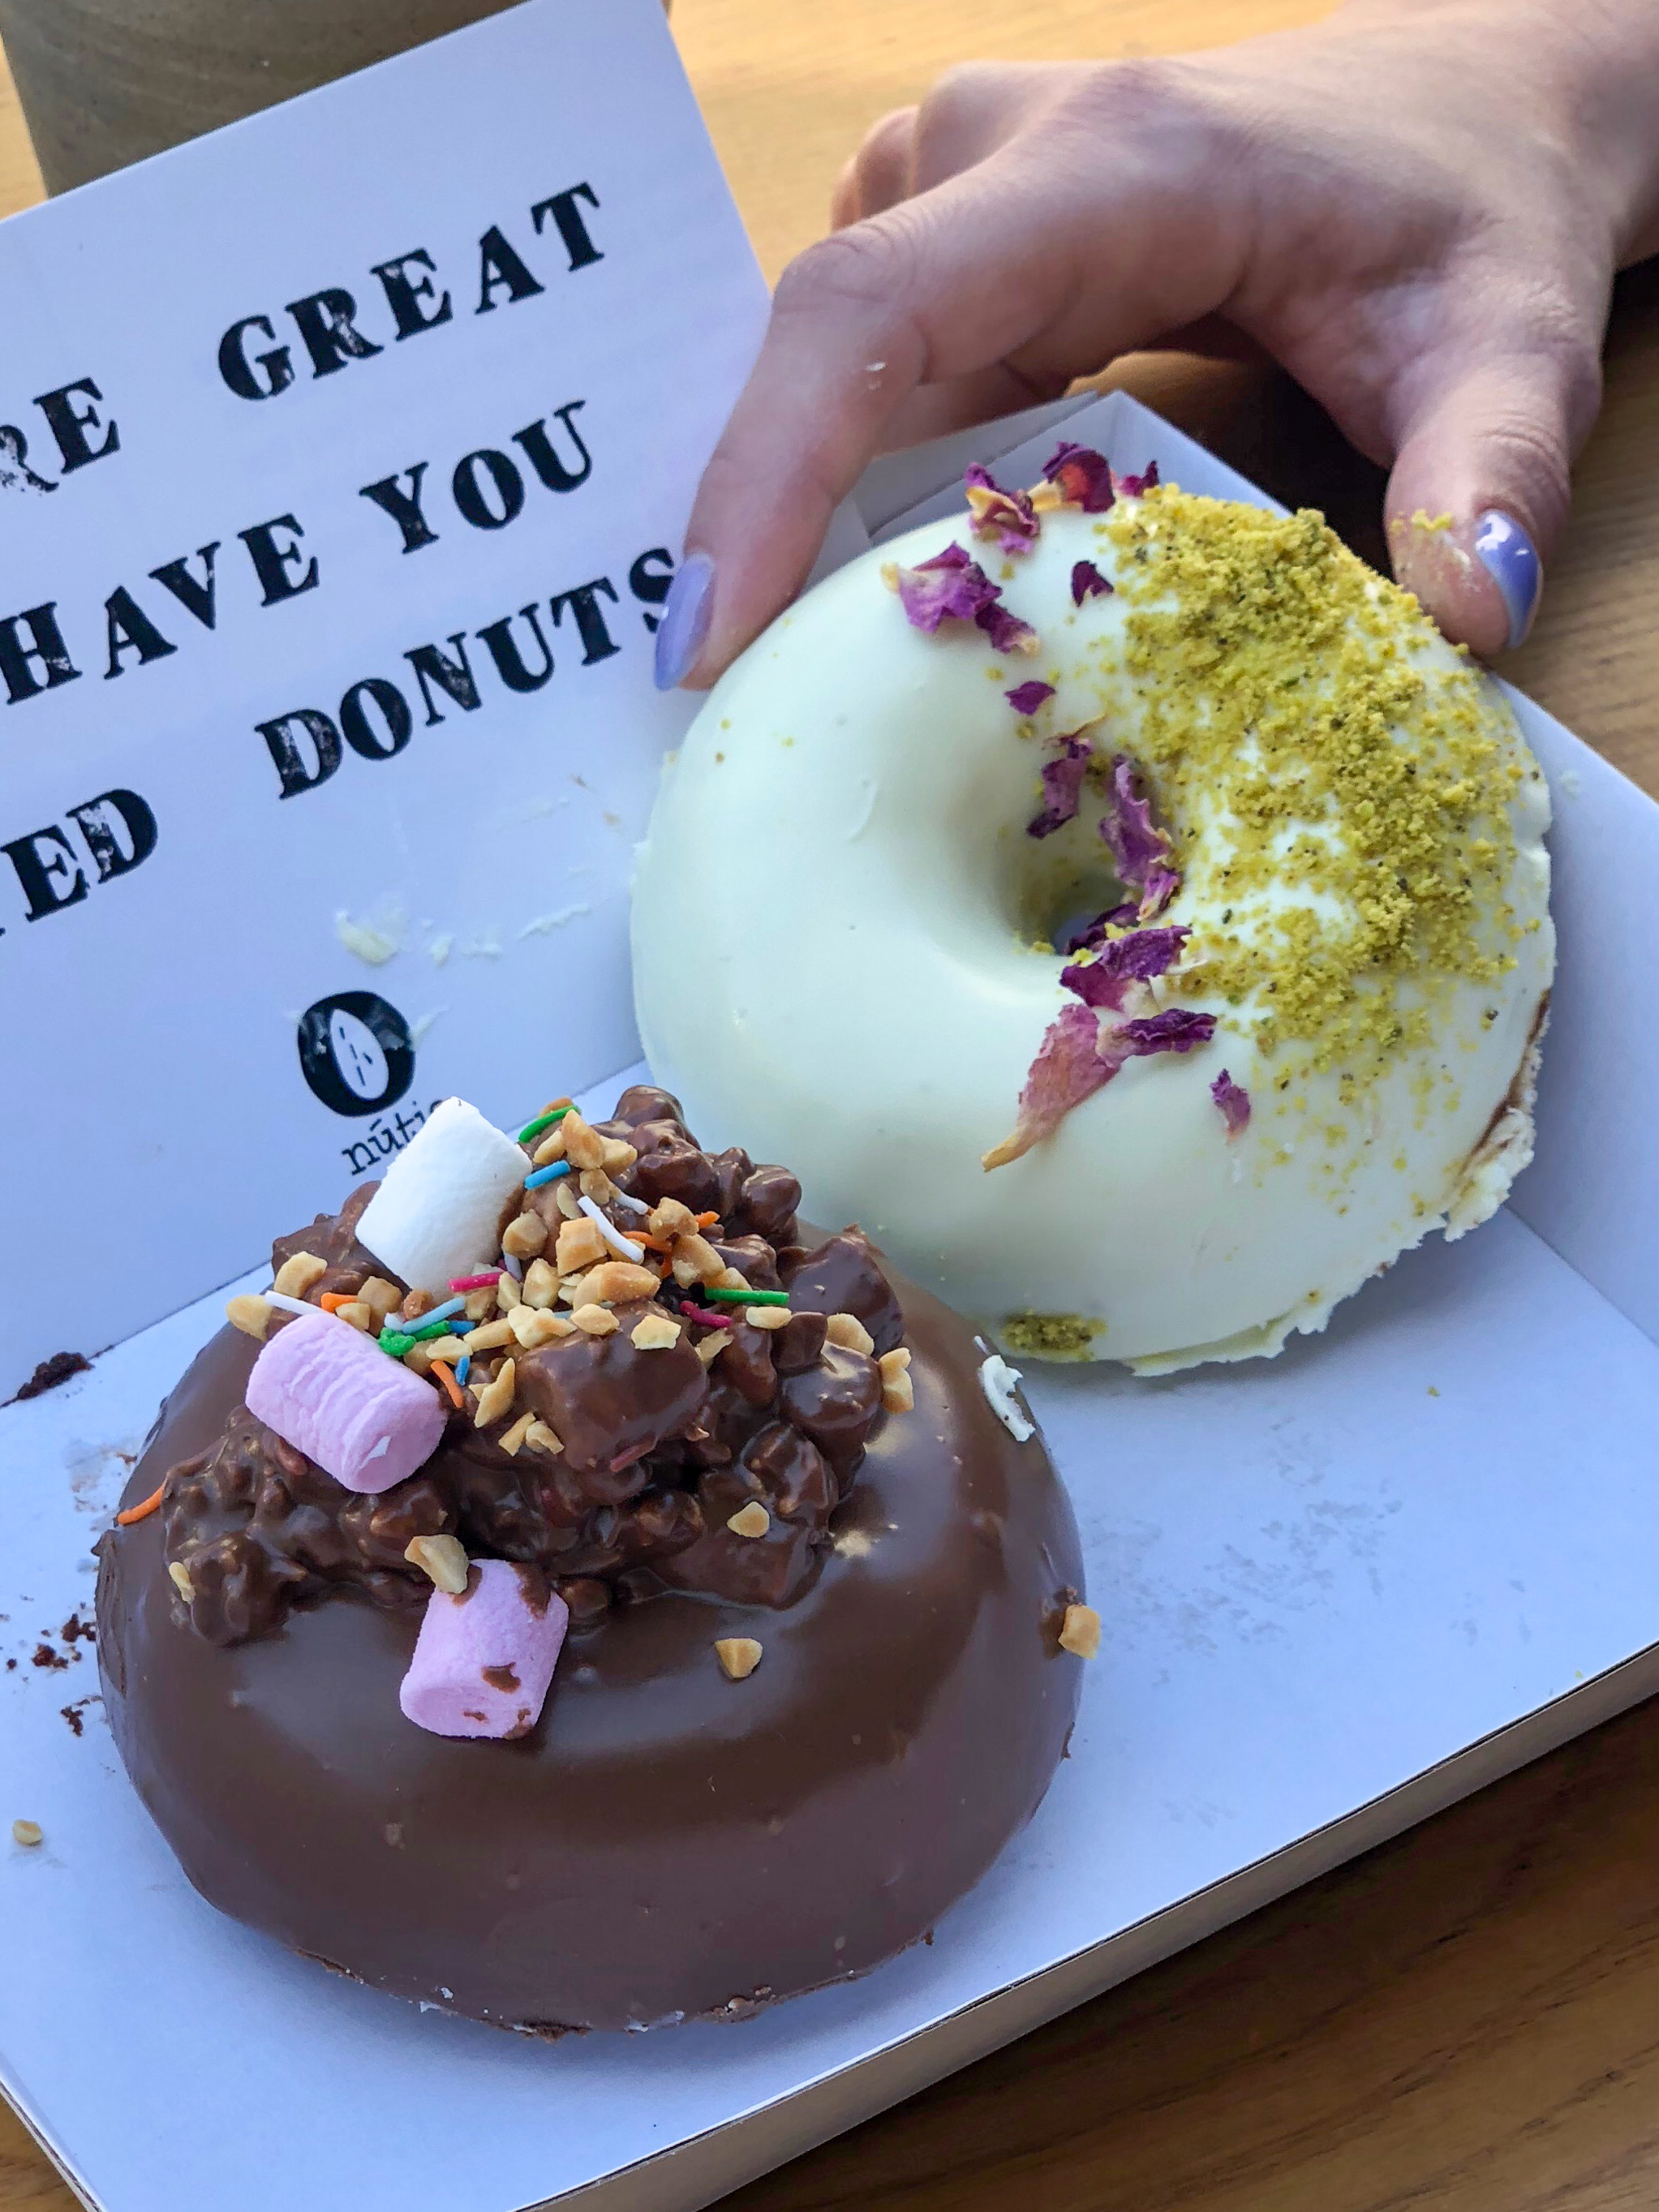 Rocky Road and Rose & Pistachio Donuts from Nutie